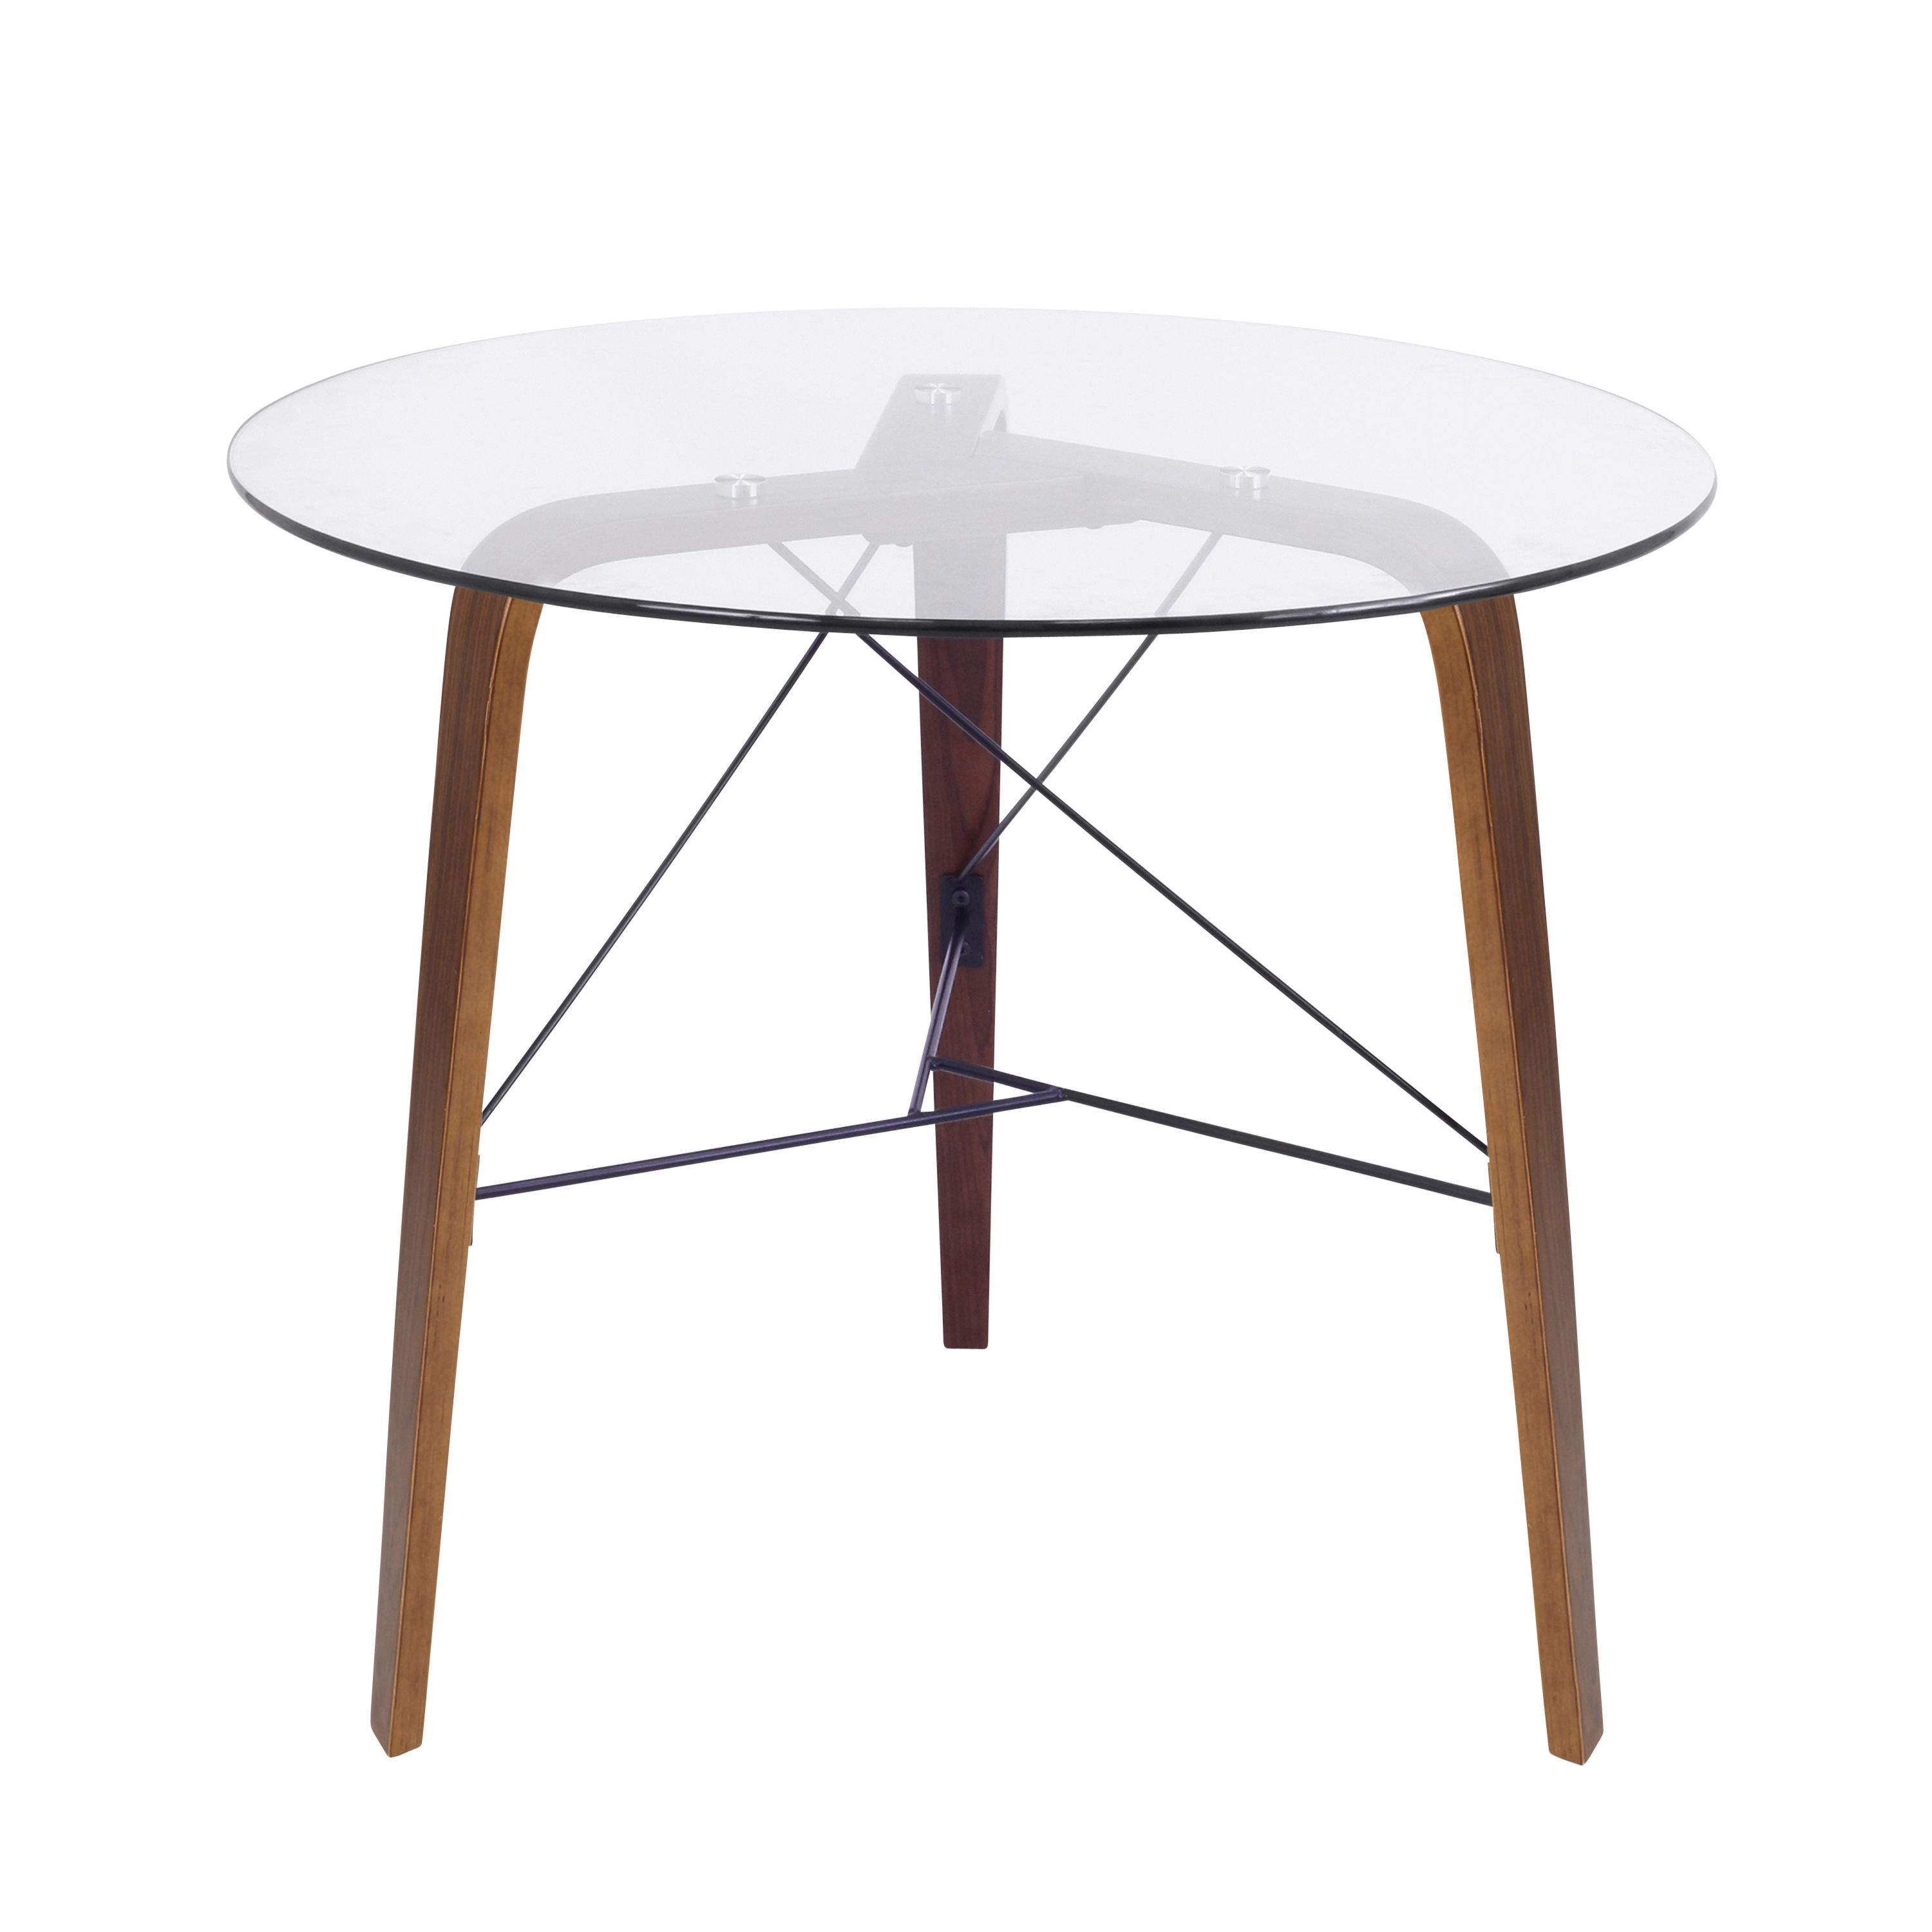 With Its Sturdy Construction Sleek Curves And Retro Flair The Bent - Mid century modern bistro table